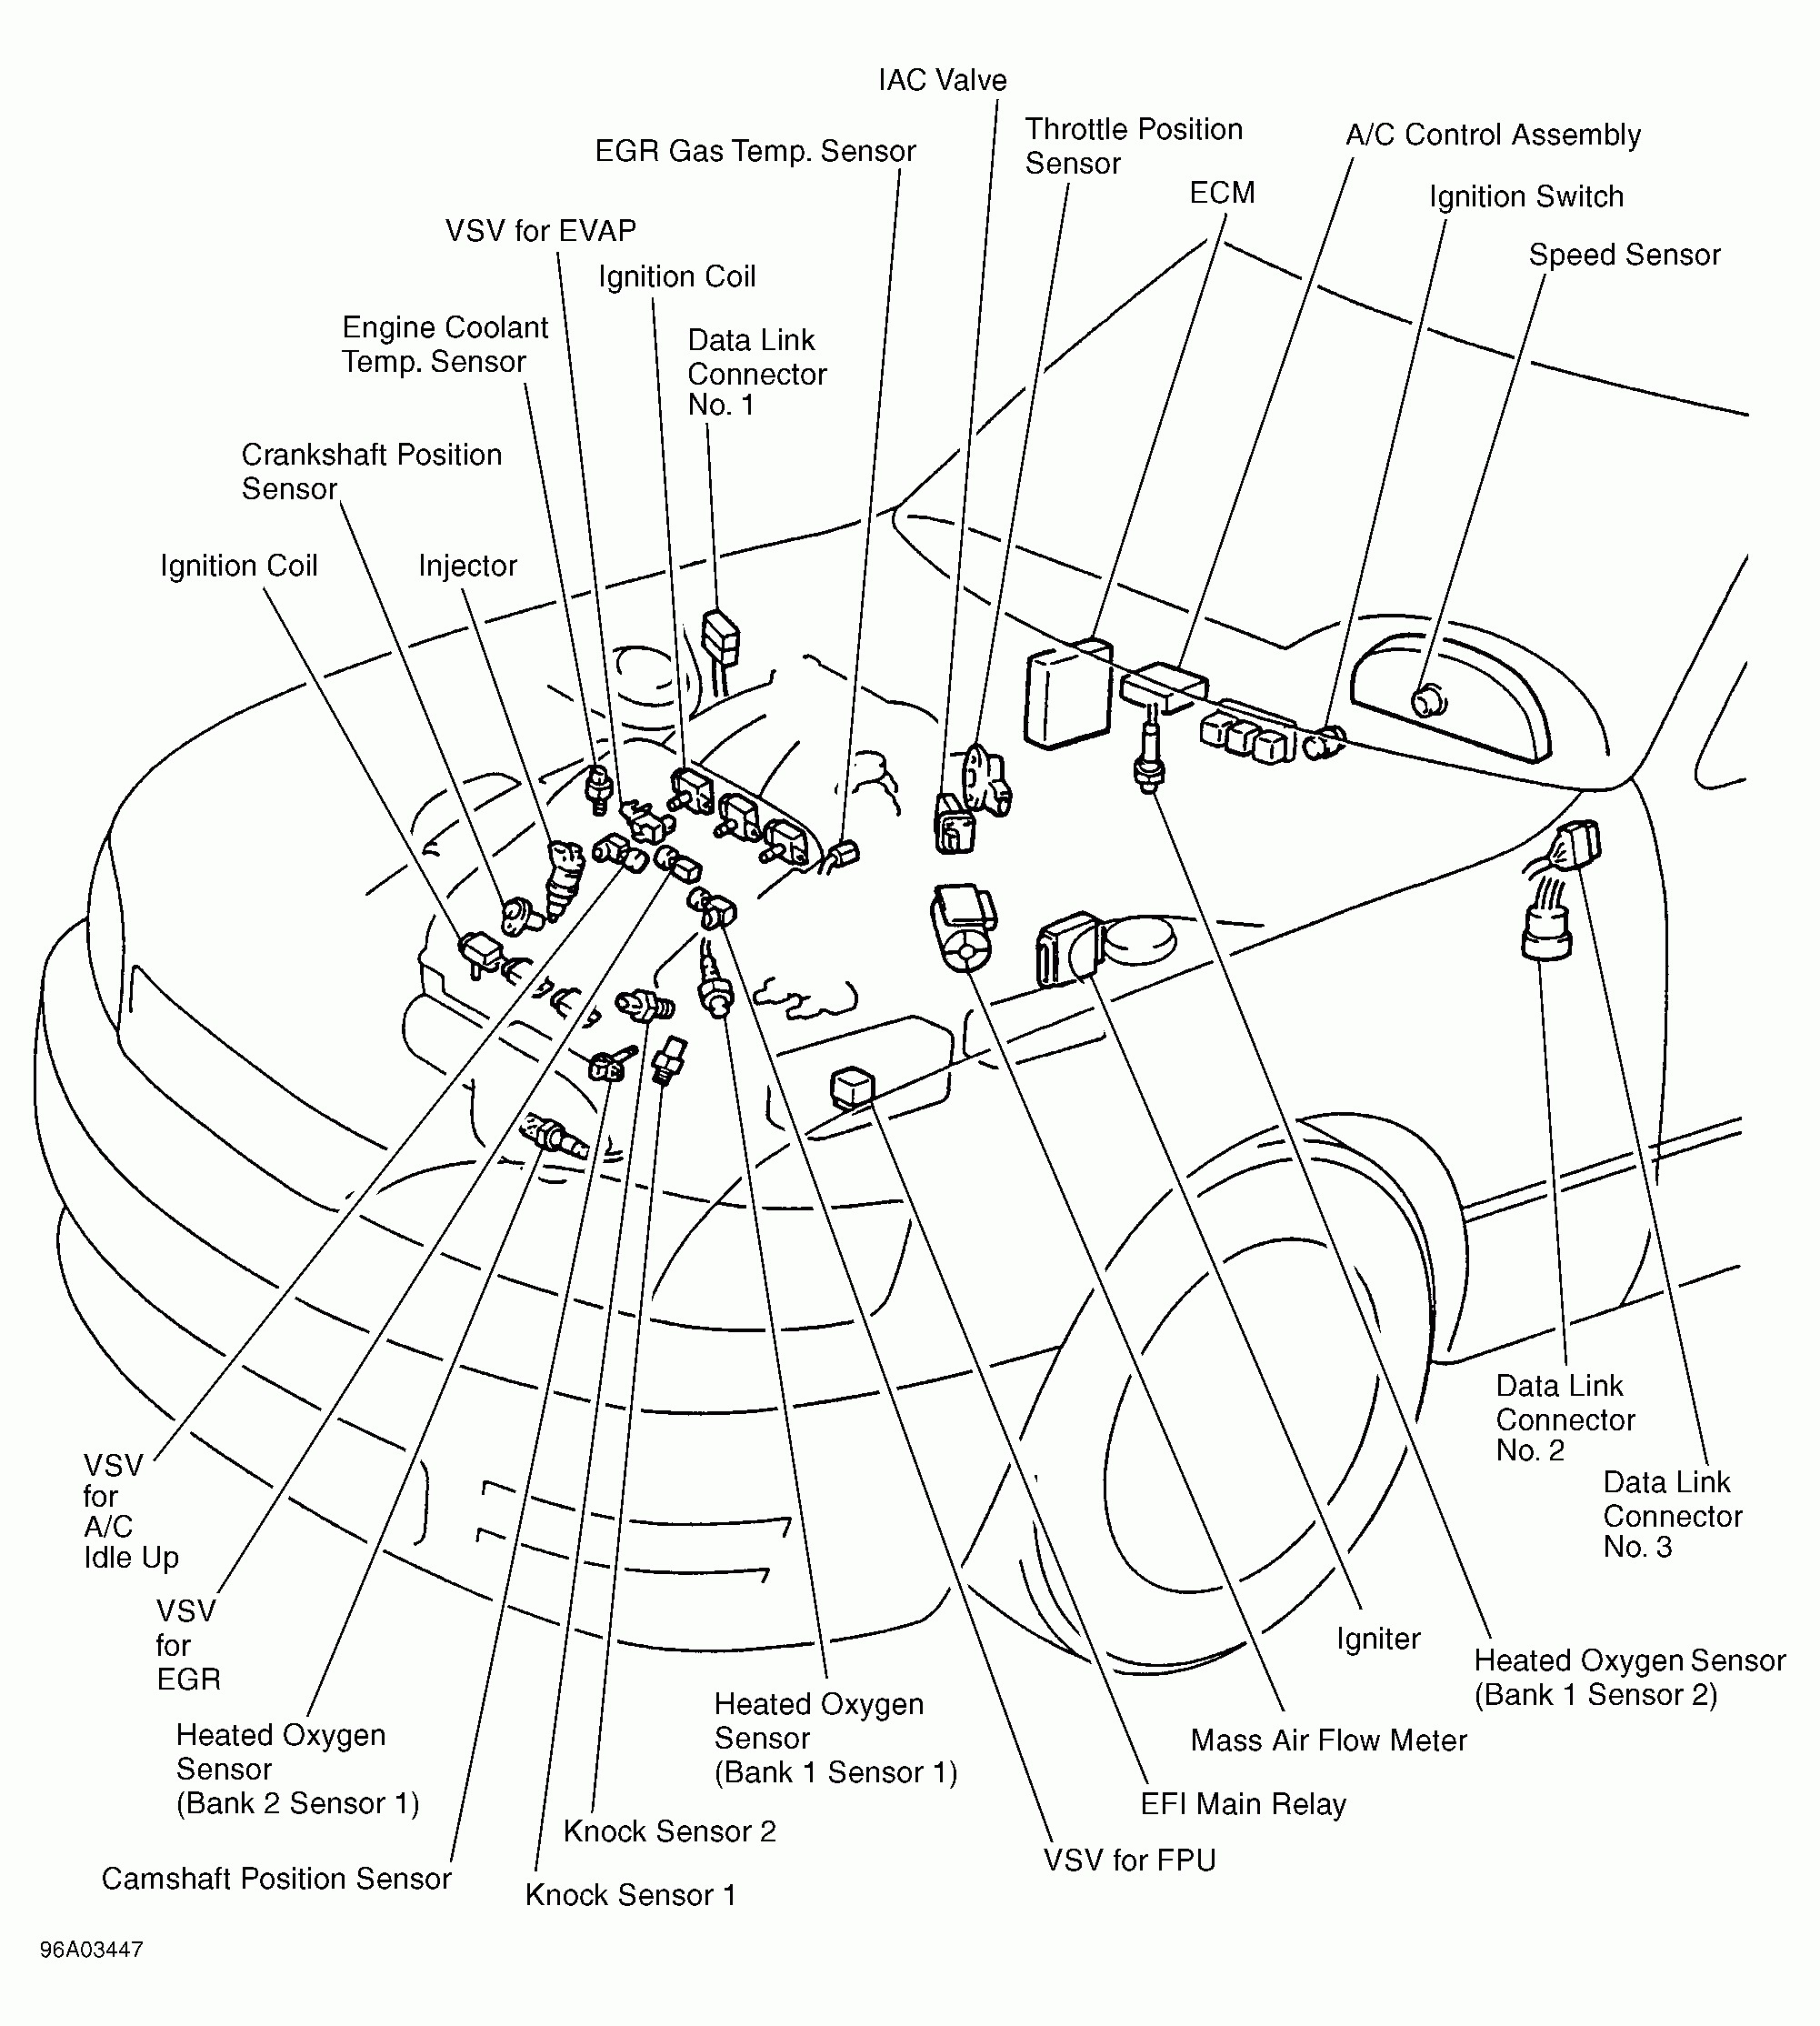 ohv v6 engine diagram auto electrical wiring diagram 3.6 Liter V6 DOHC Engine related with ohv v6 engine diagram